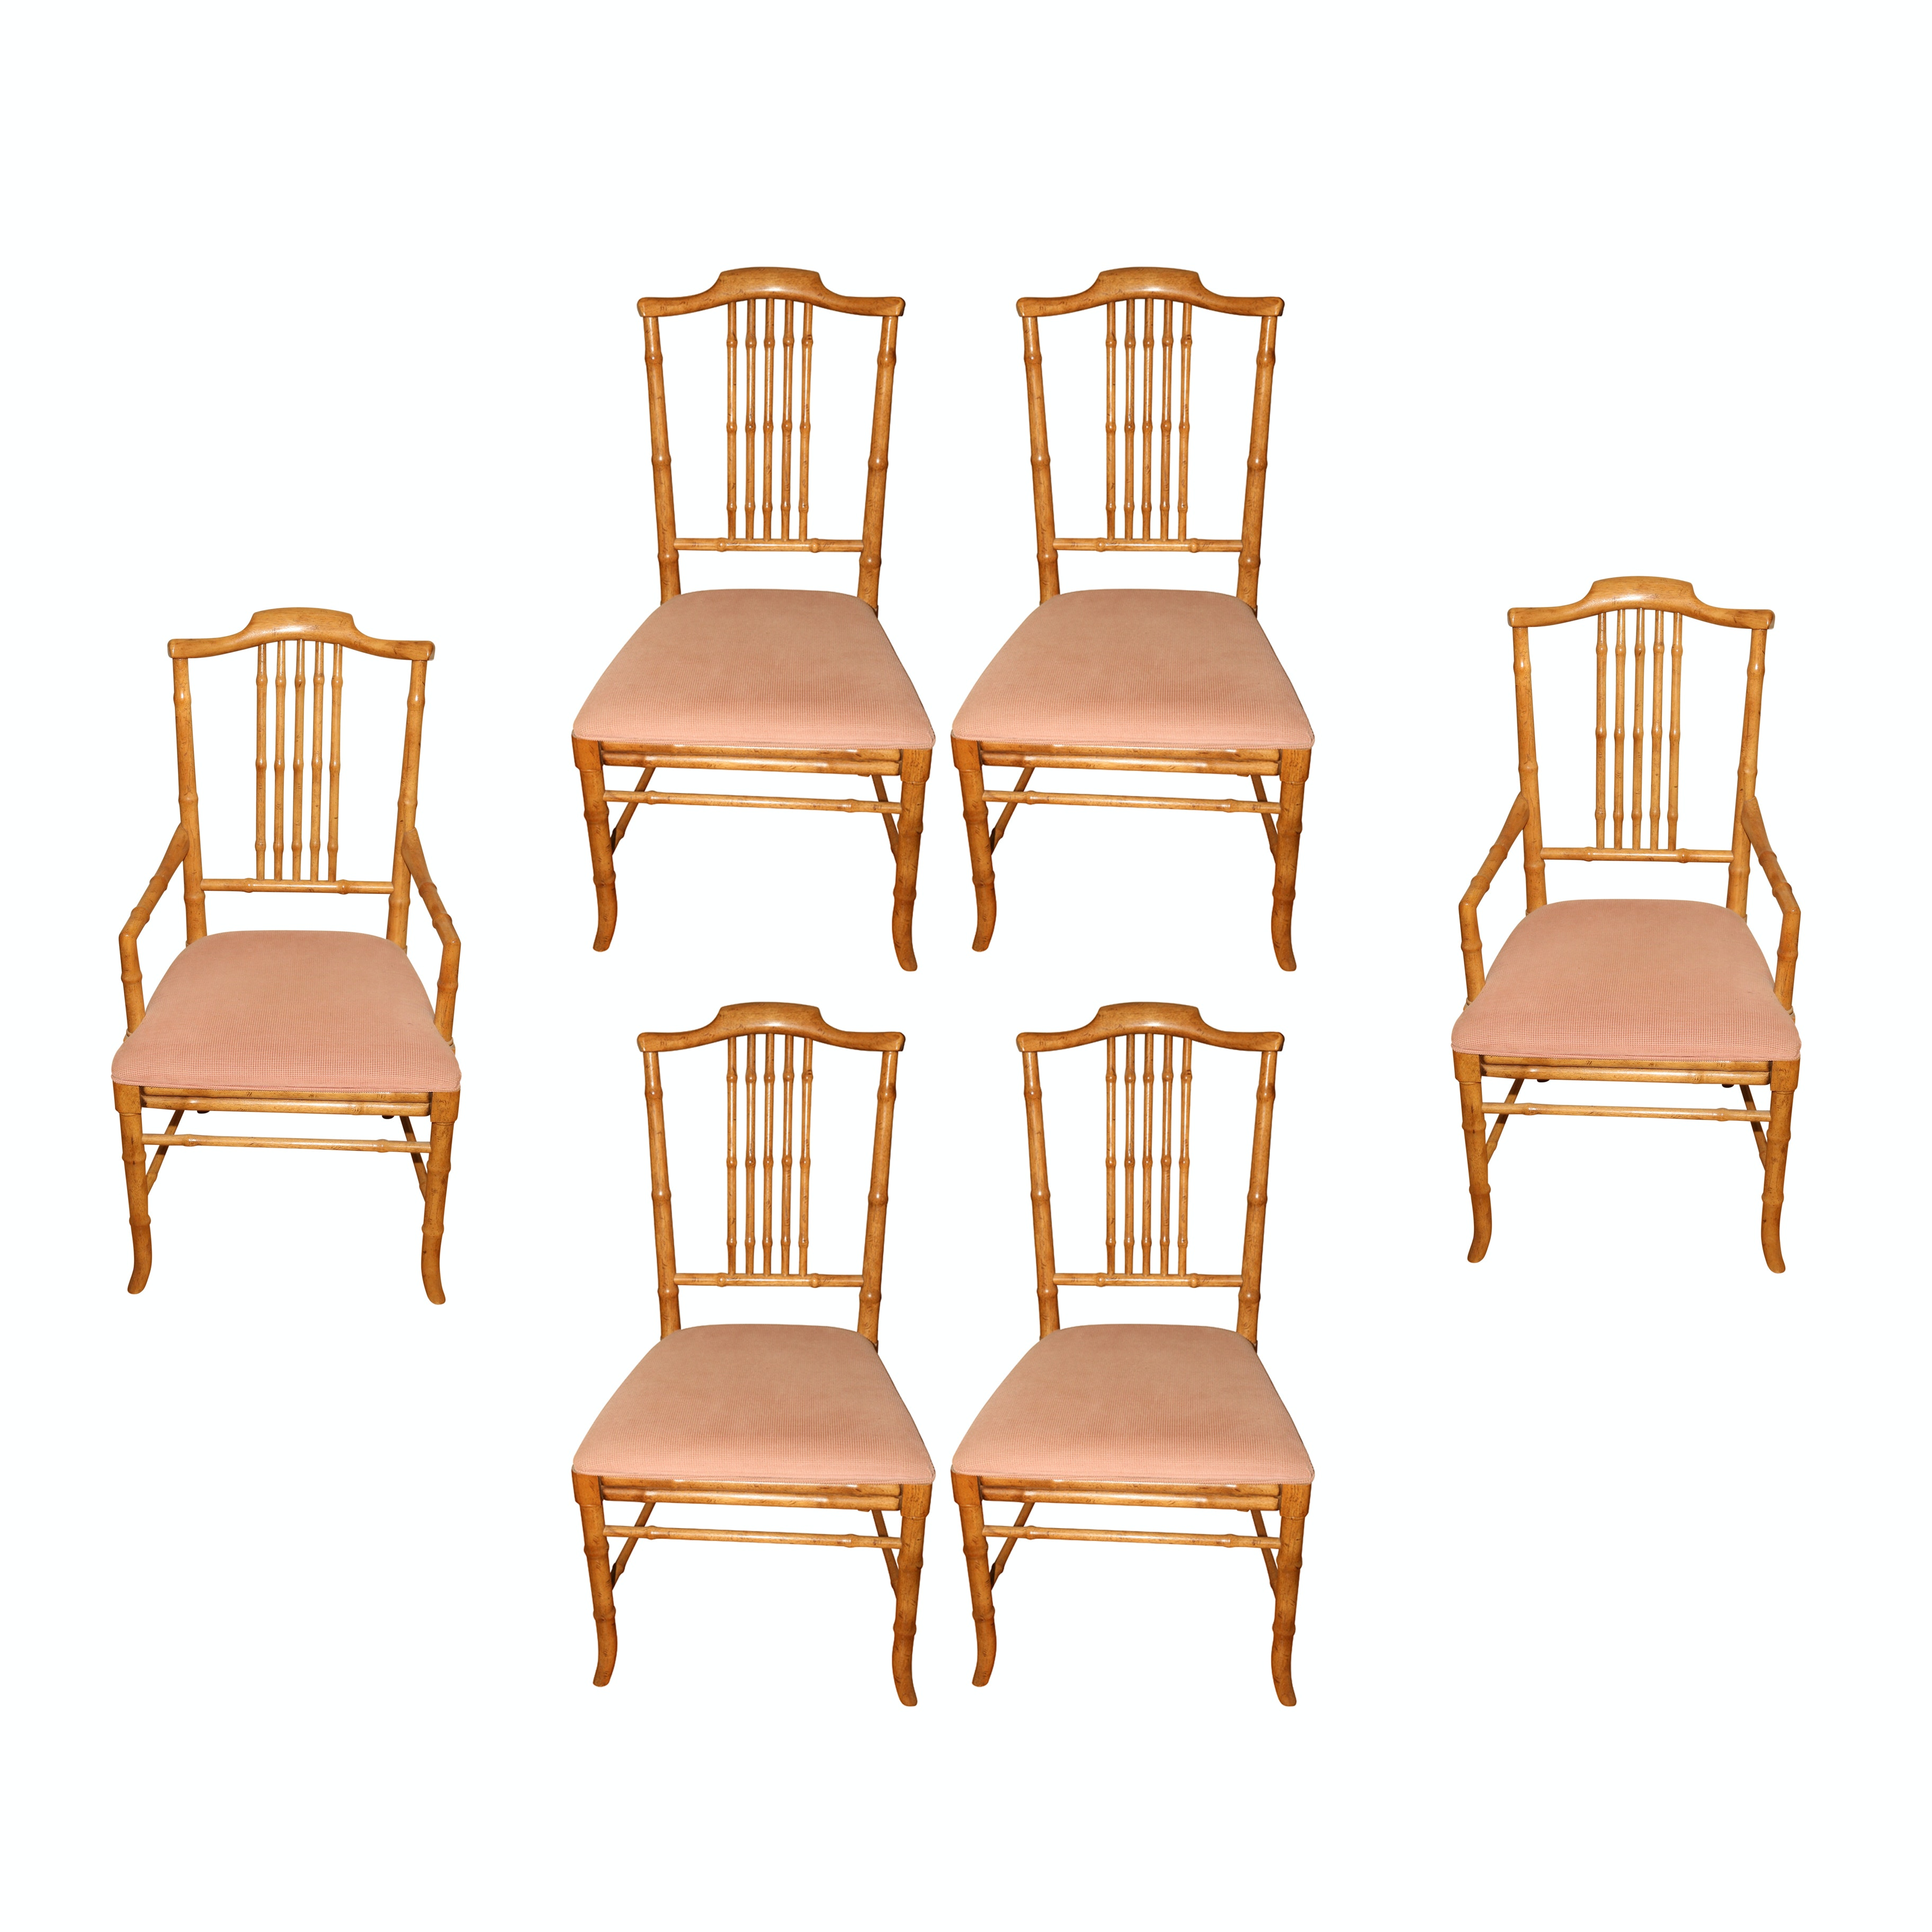 Captiva Collection Faux Bamboo Wood Dining Chairs by Drexel, Mid-20th Century